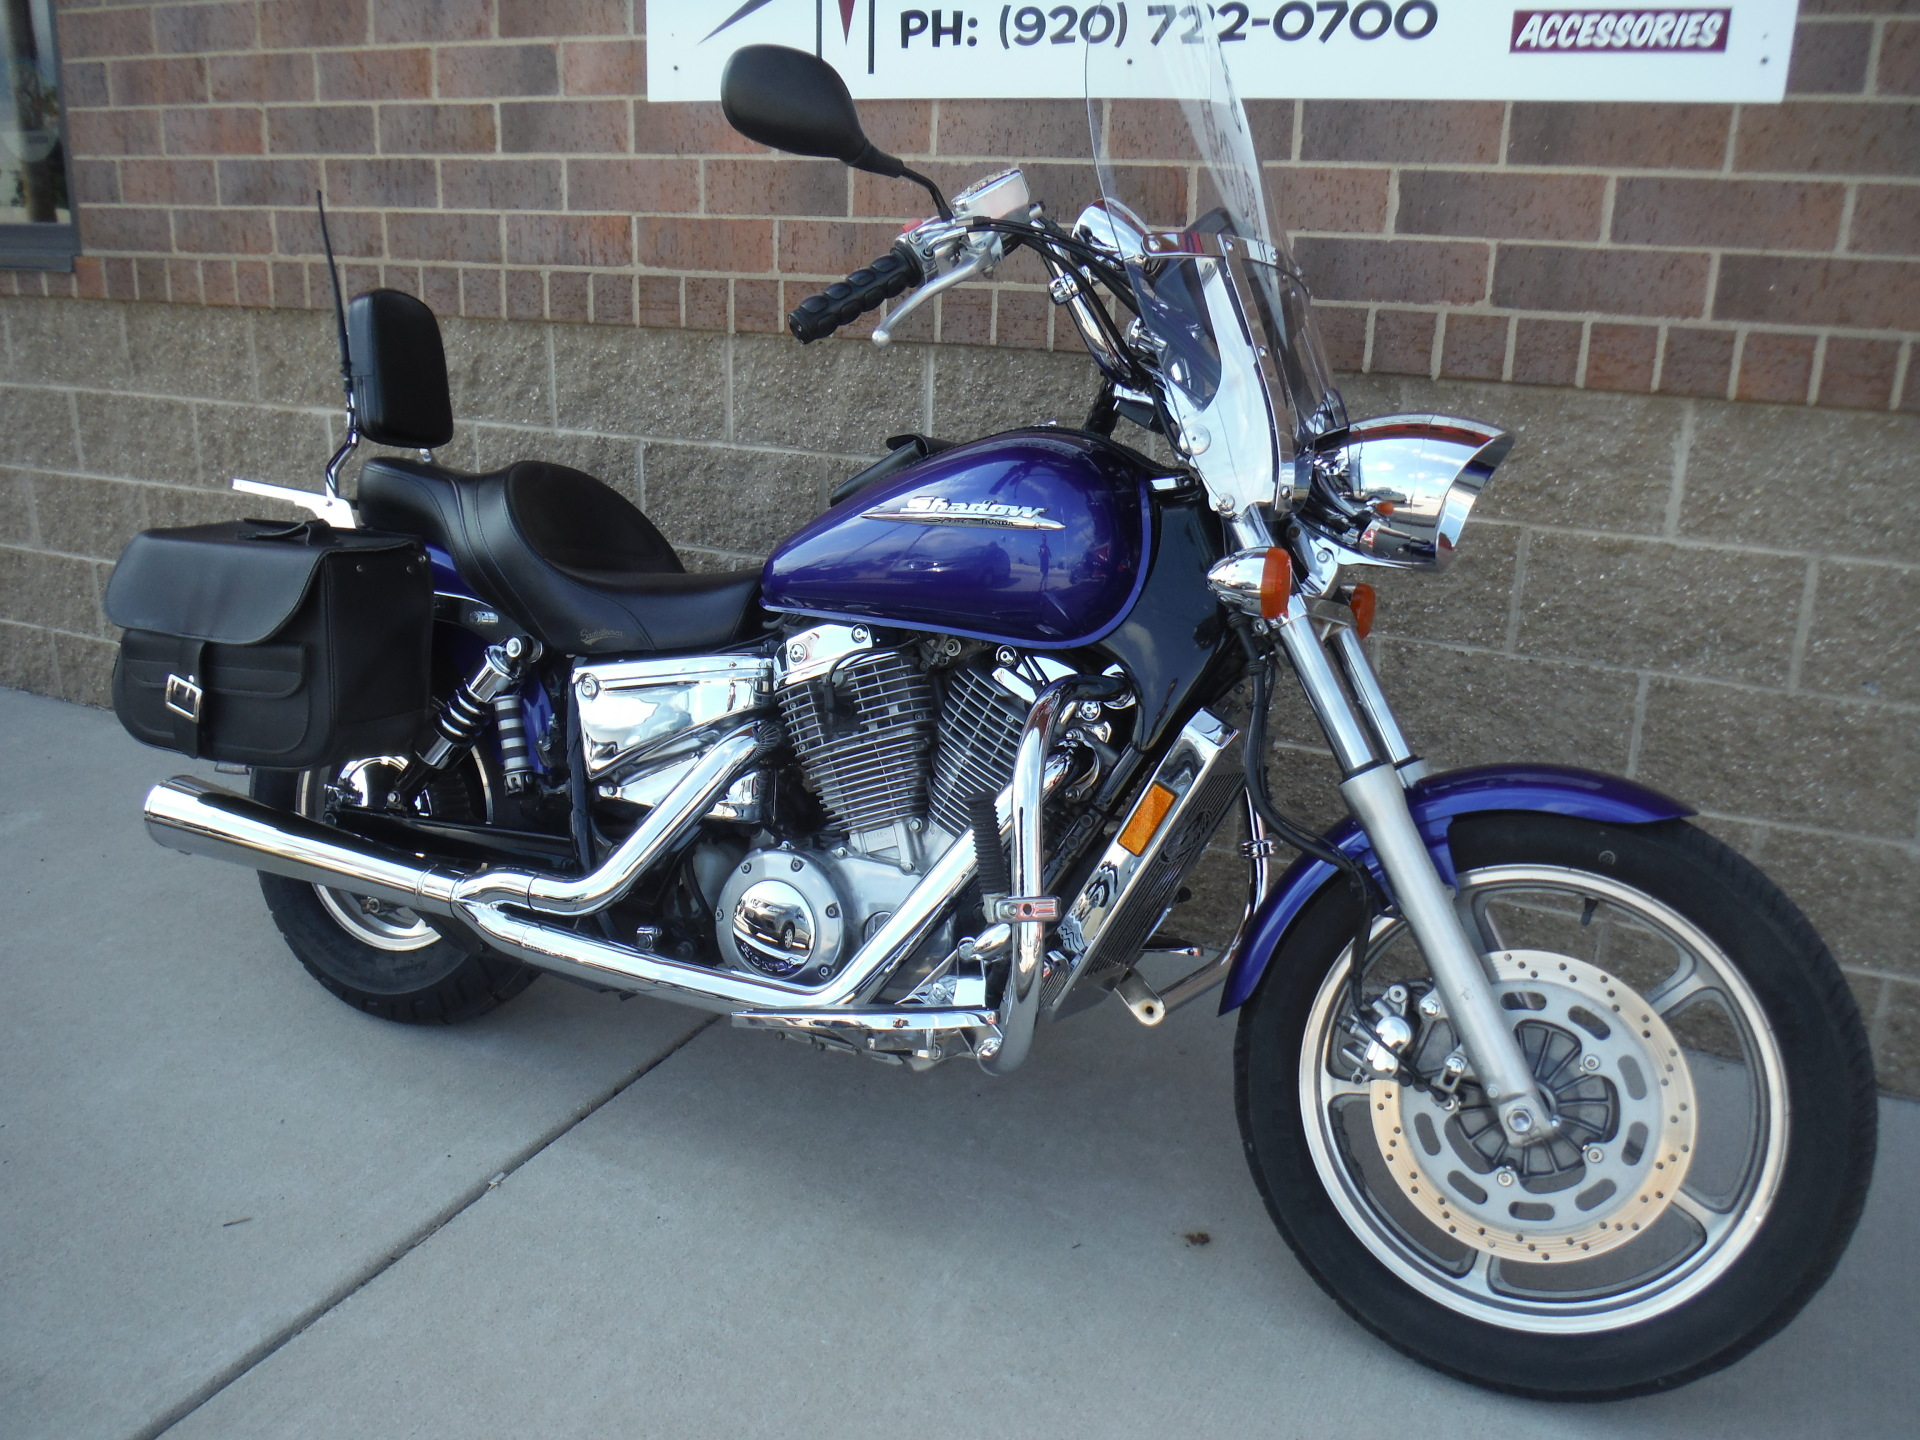 2001 Honda VT1100 Shadow